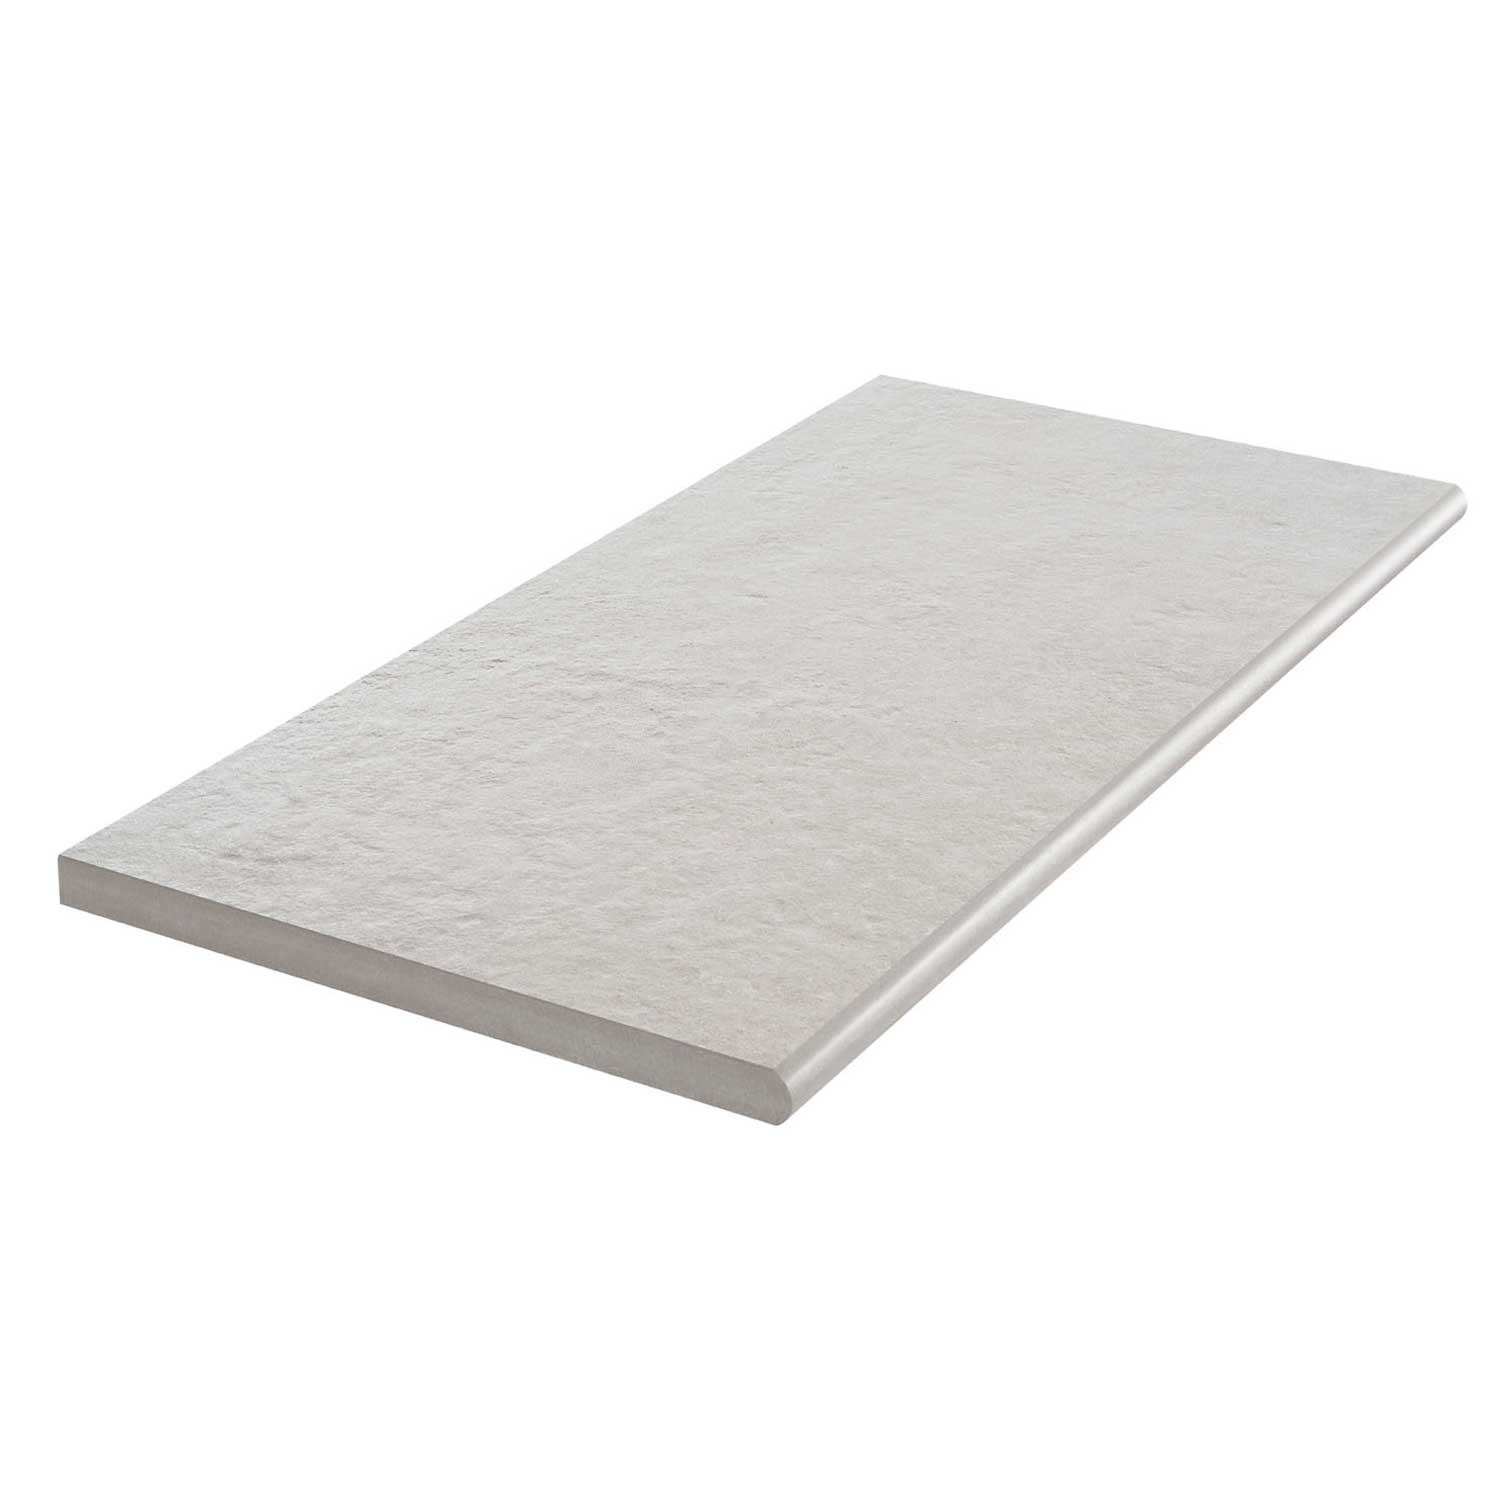 Klinker Bricmate Z Concrete Light Grey Poolside/step 30x60 cm